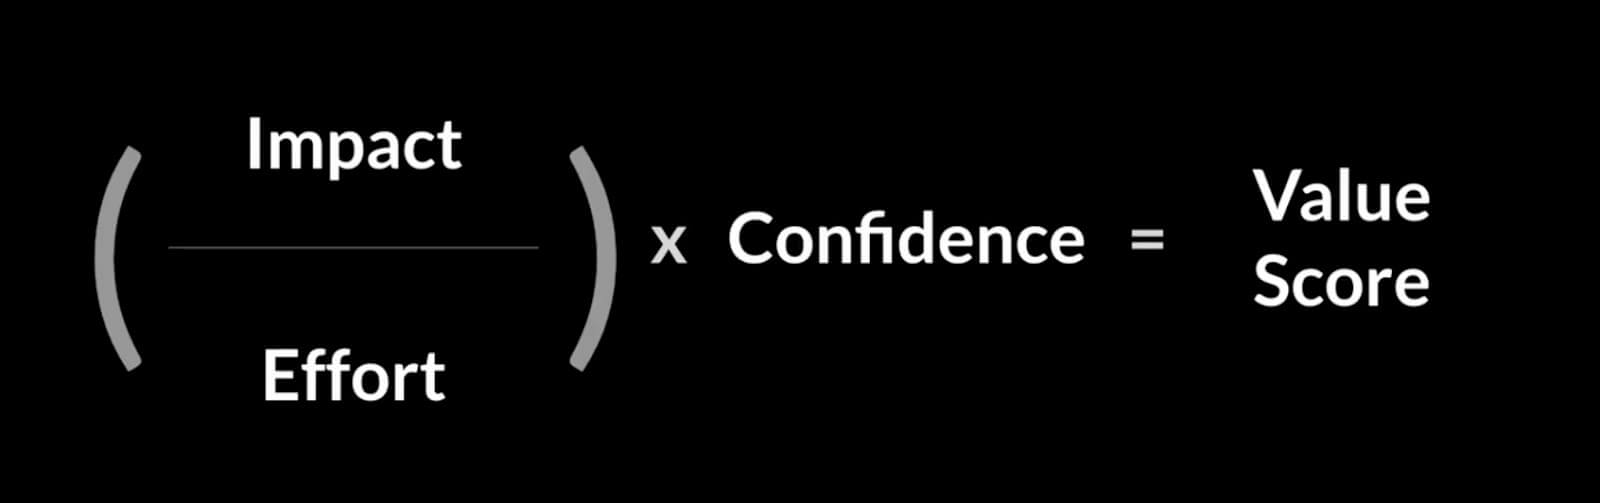 impact and effort x confidence = value score